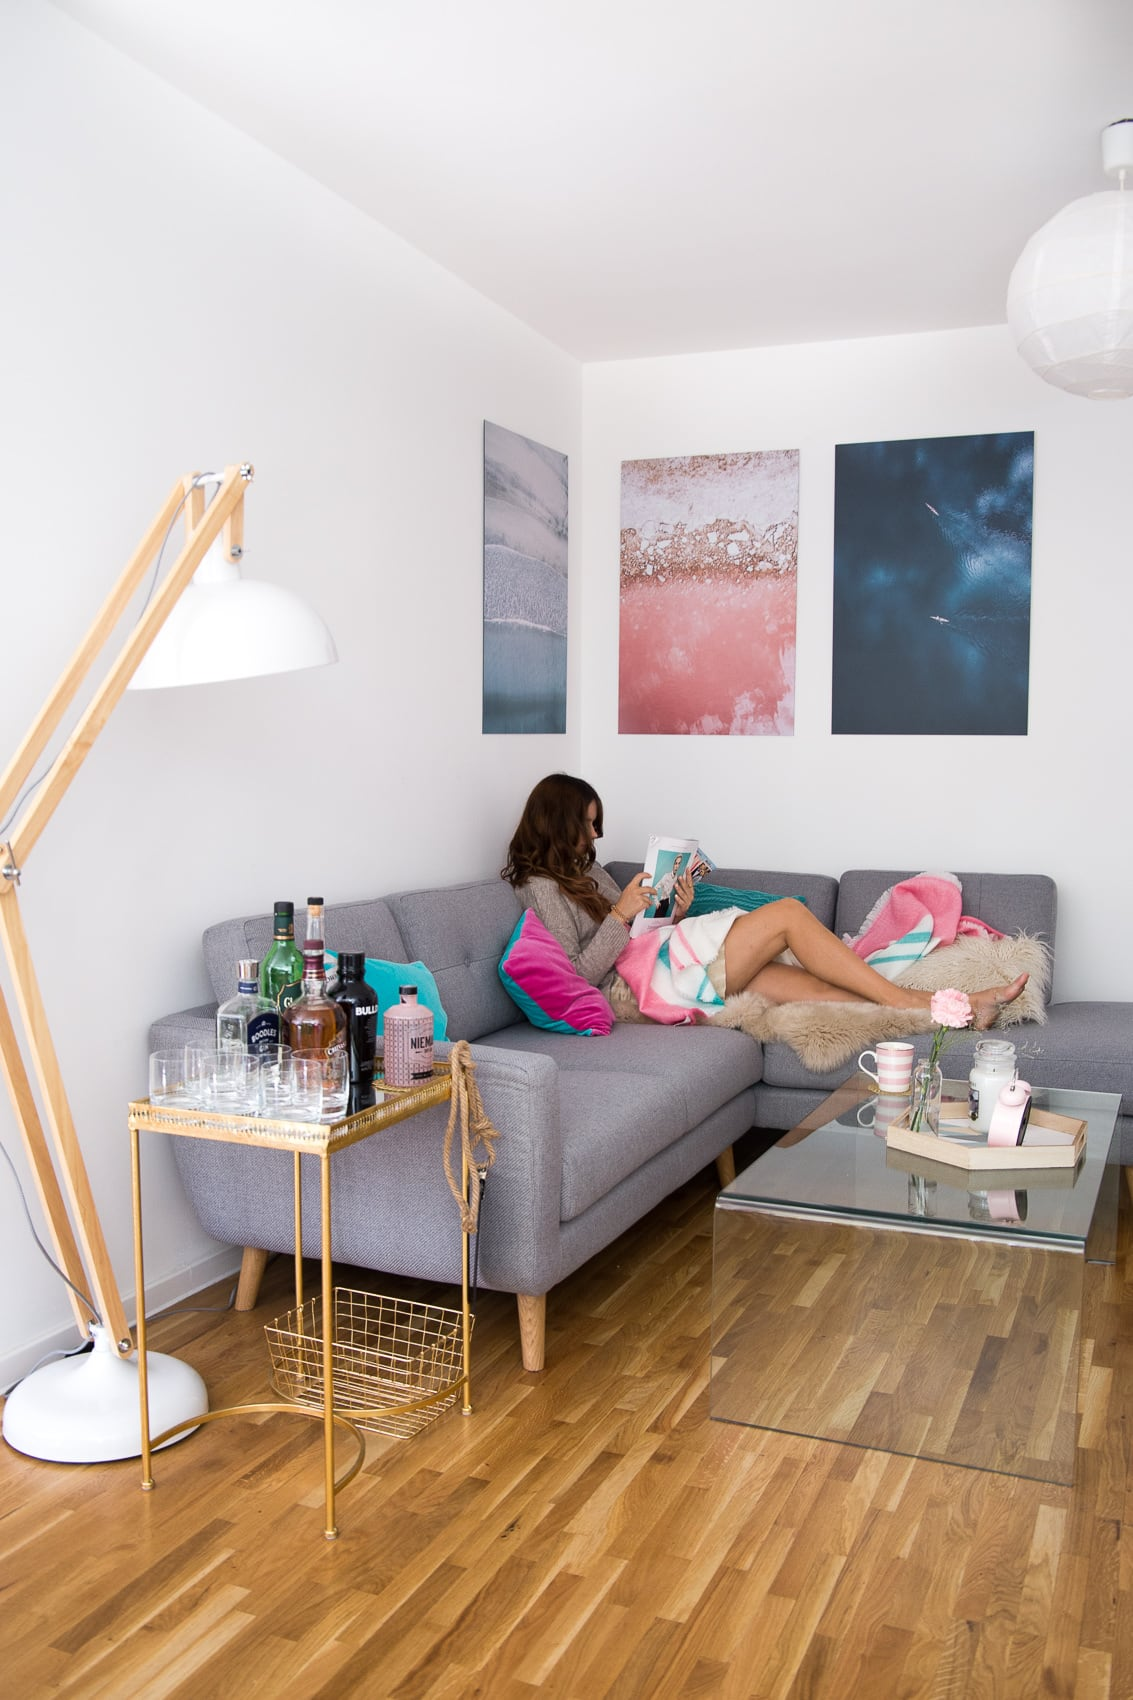 Home sweet home neues sofa wohnzimmer inspiration for Home sweet home sofa